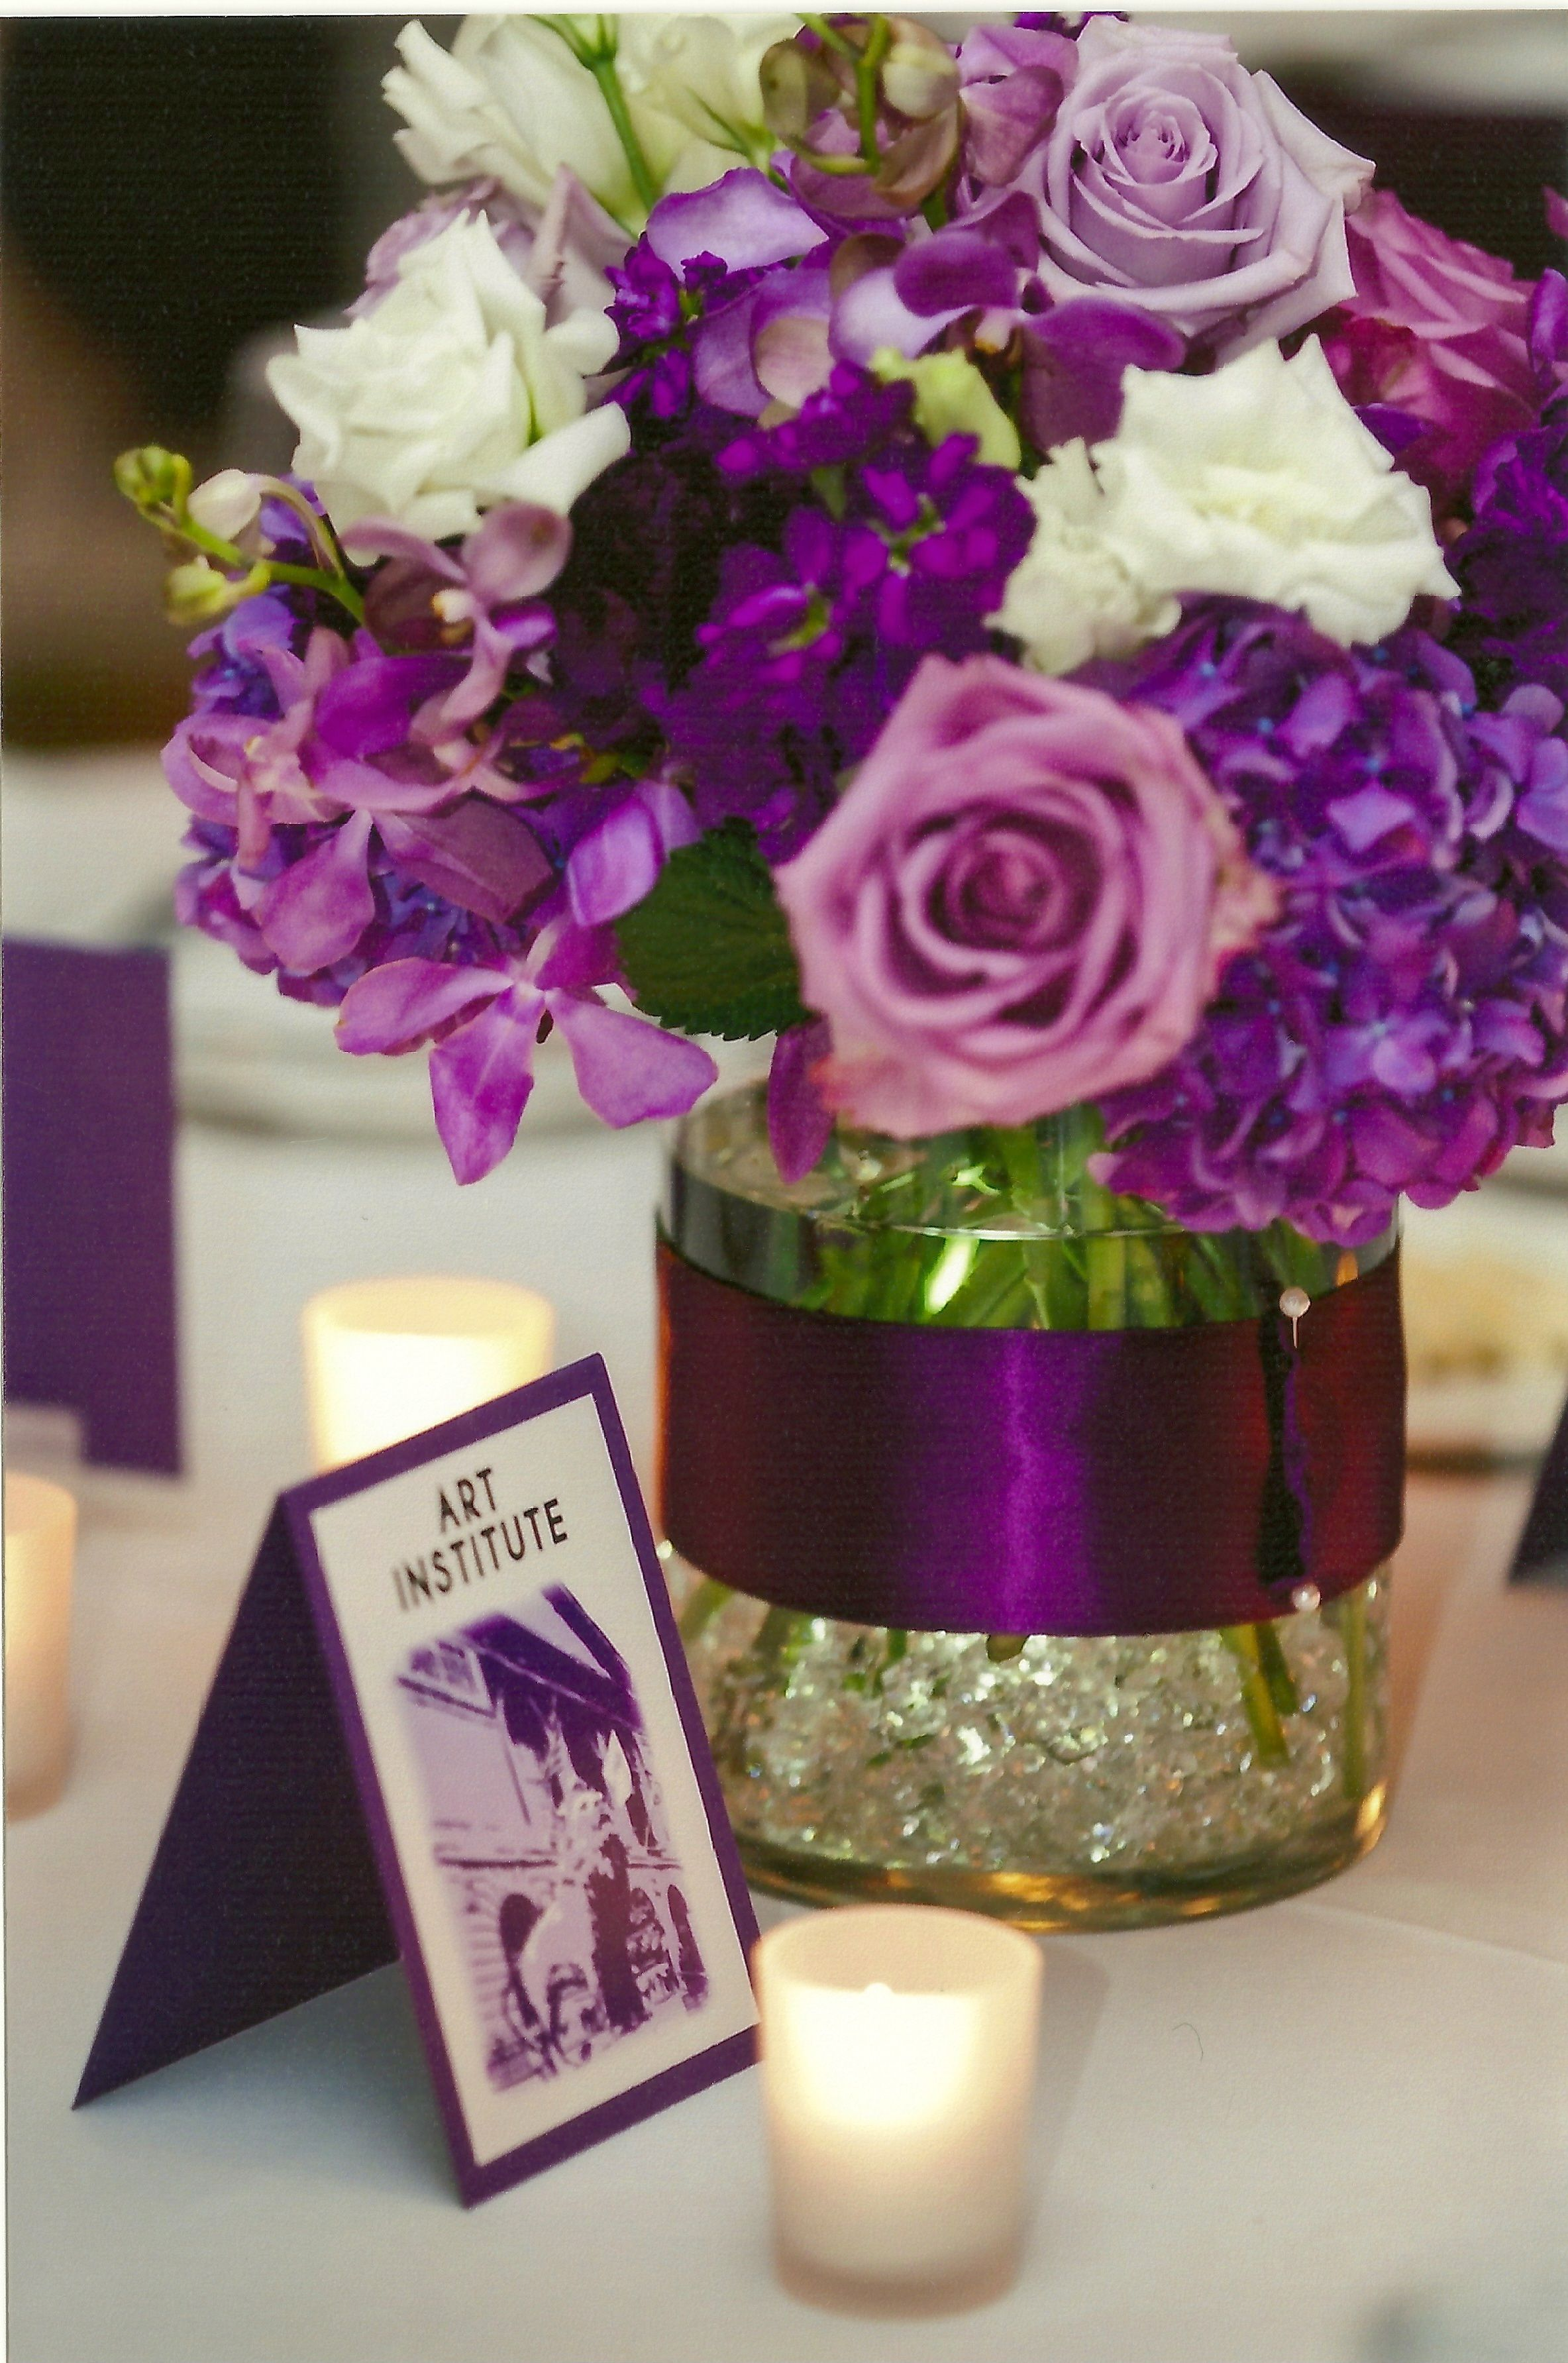 Low centerpiece of dark purple hydrangea lavender roses